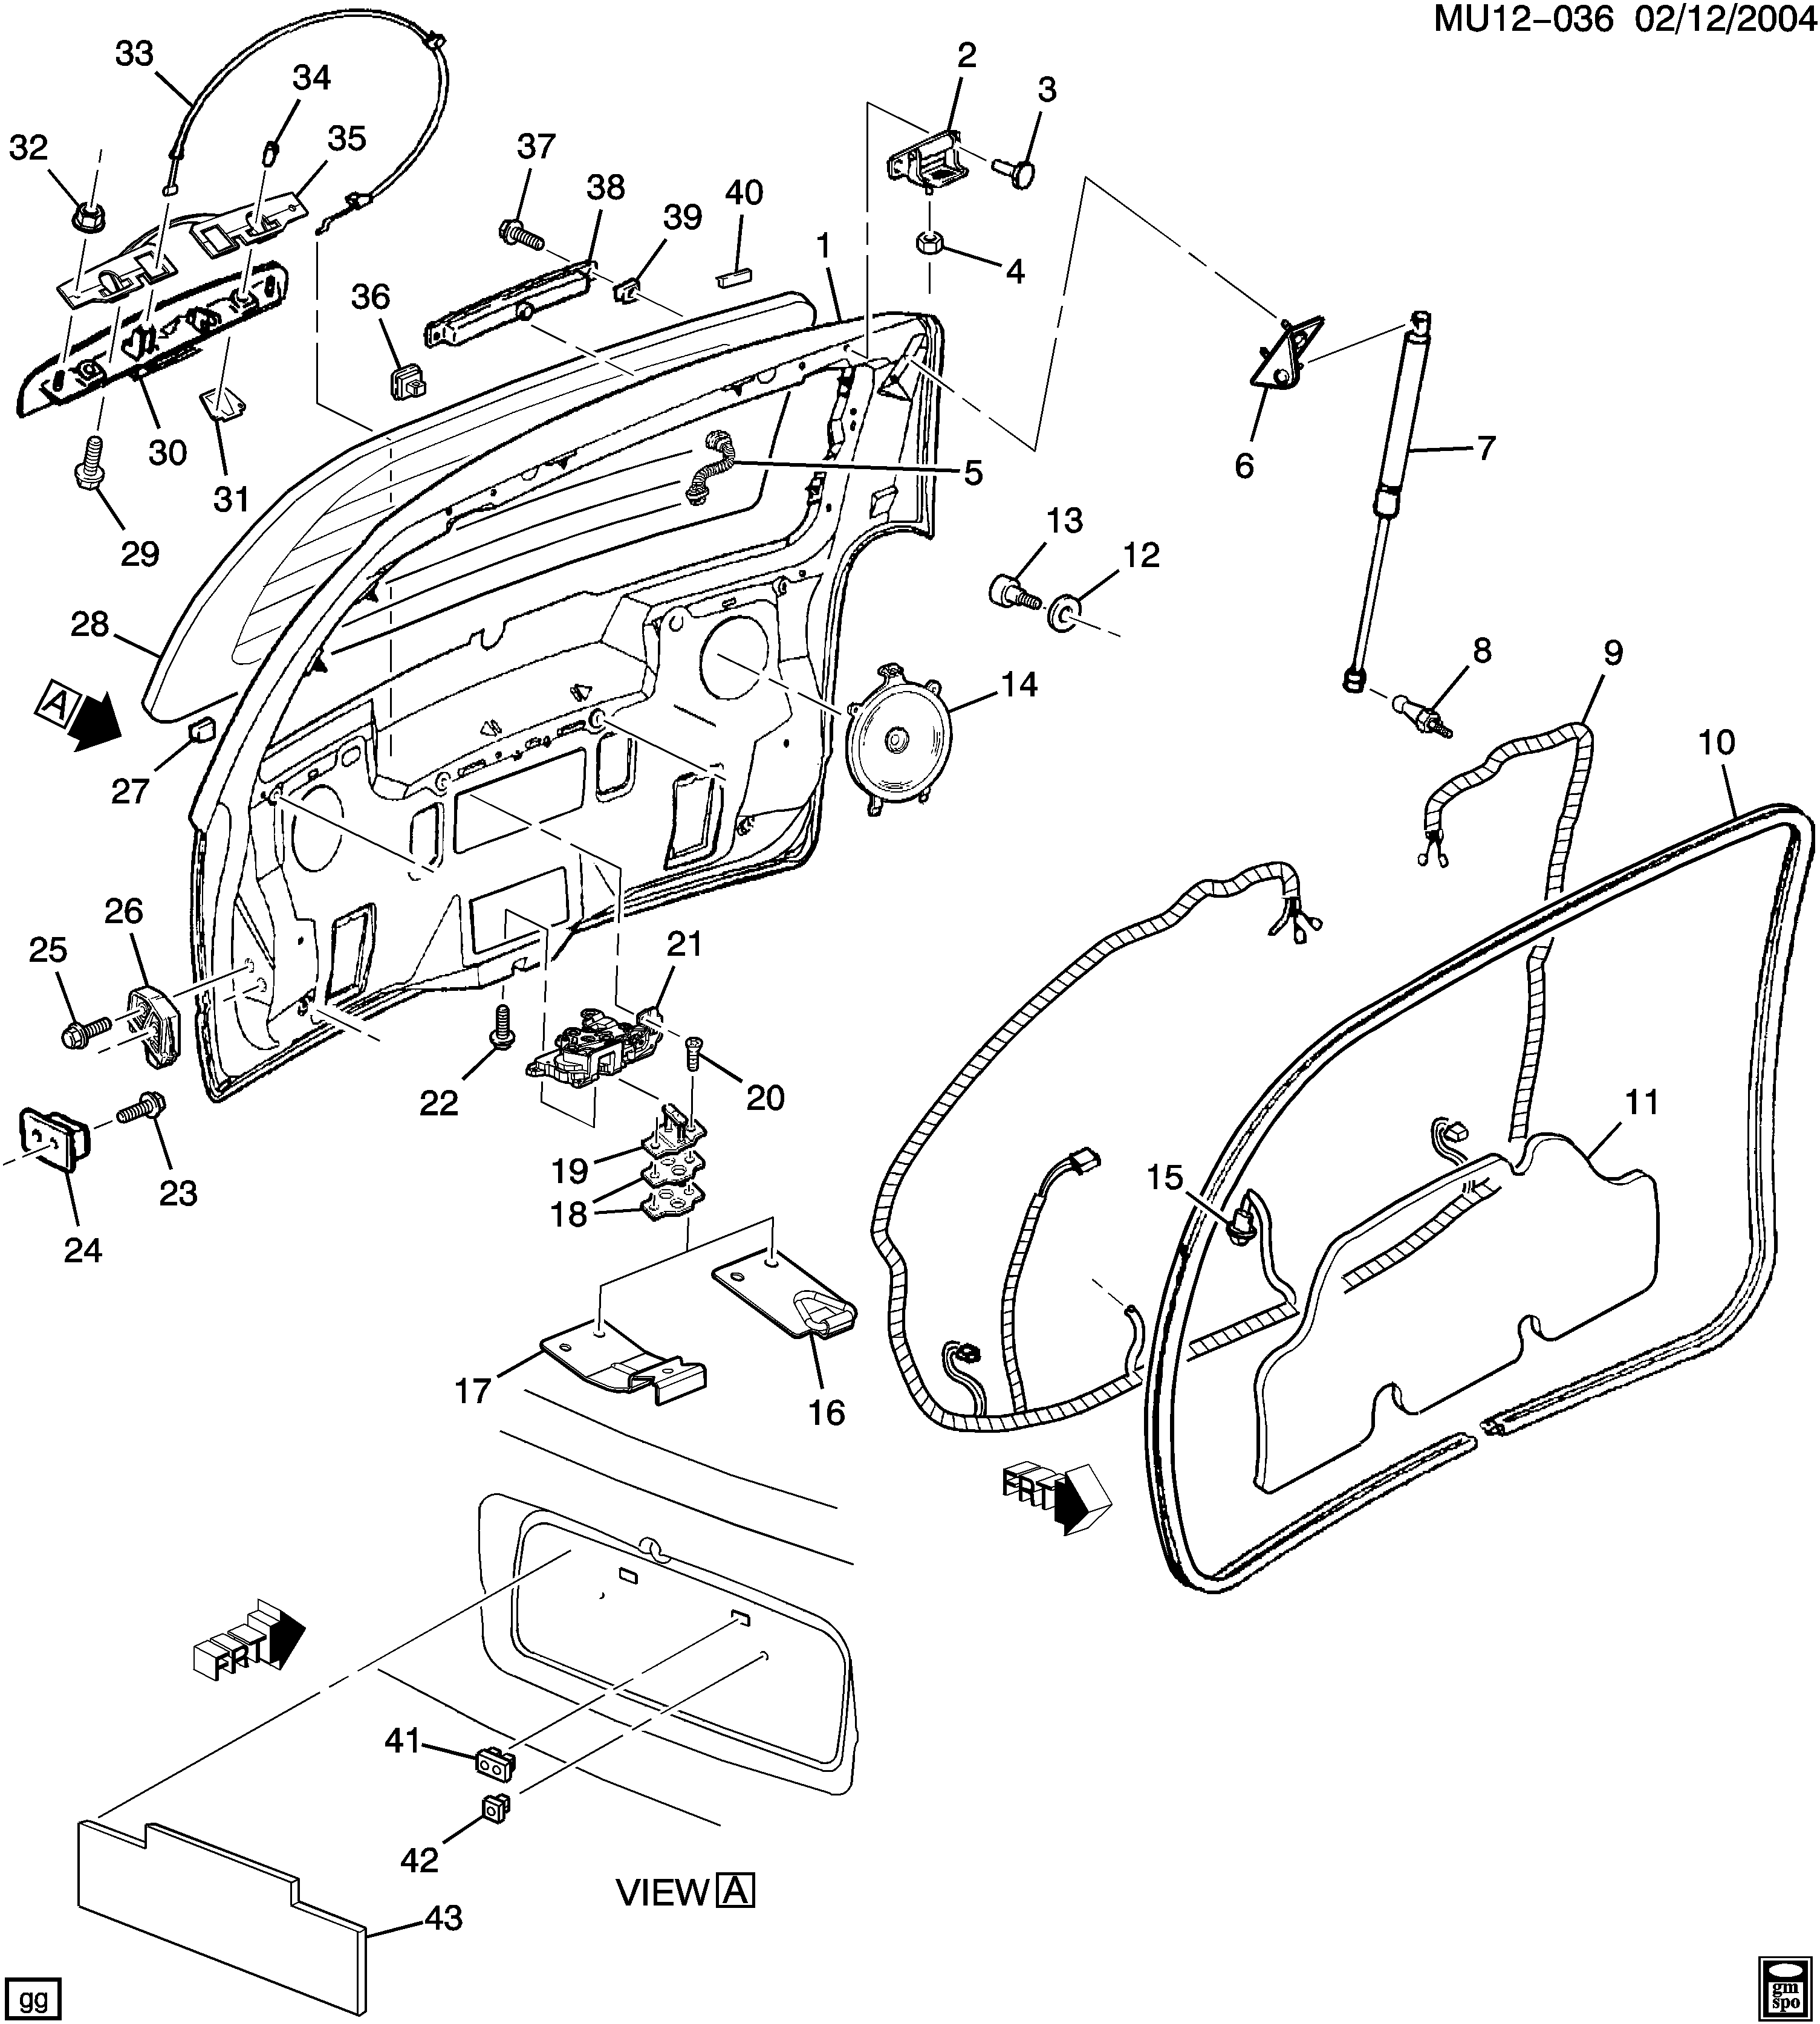 Gm Illustrated Parts Catalog Online additionally Cat 3116 Starter Wiring Diagram as well C5500 Front Axle Parts Diagram besides Gmc Topkick 2006 Fuse Box Diagram as well 3116 Cat Engine Parts Diagram. on gmc c6500 rear axle diagram